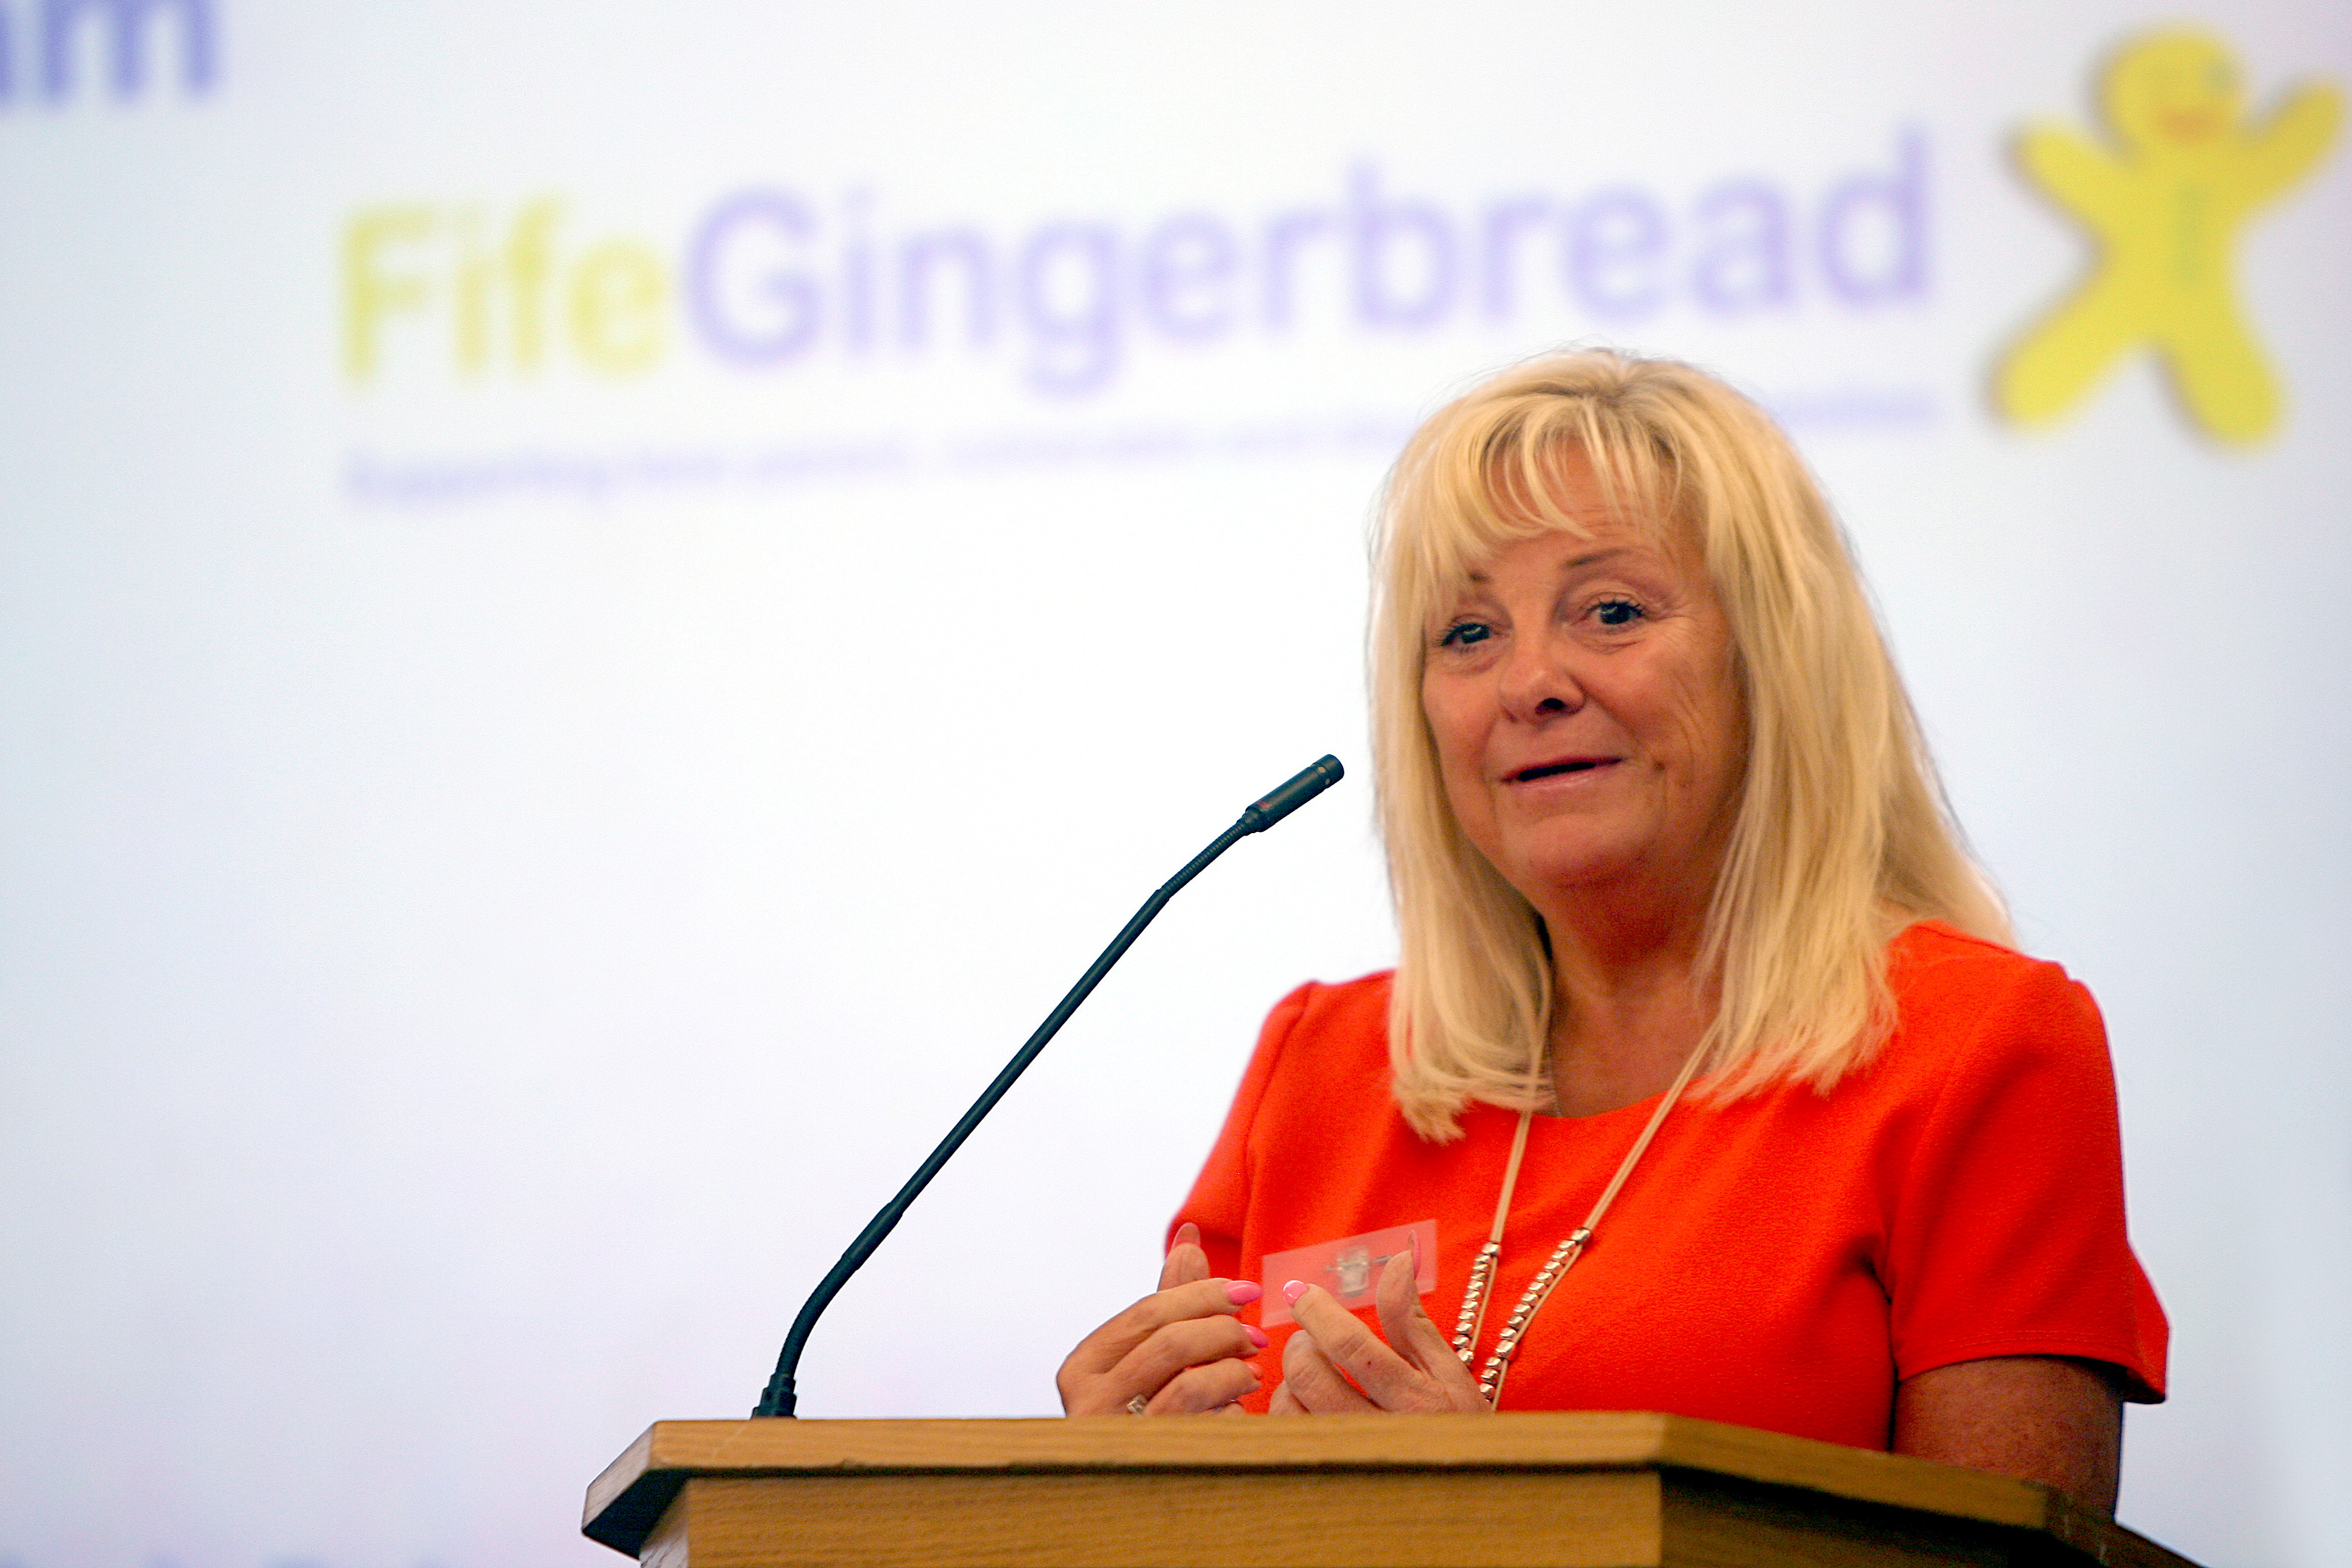 Rhona Cunningham of Fife Gingerbread said she saw hardship like never before